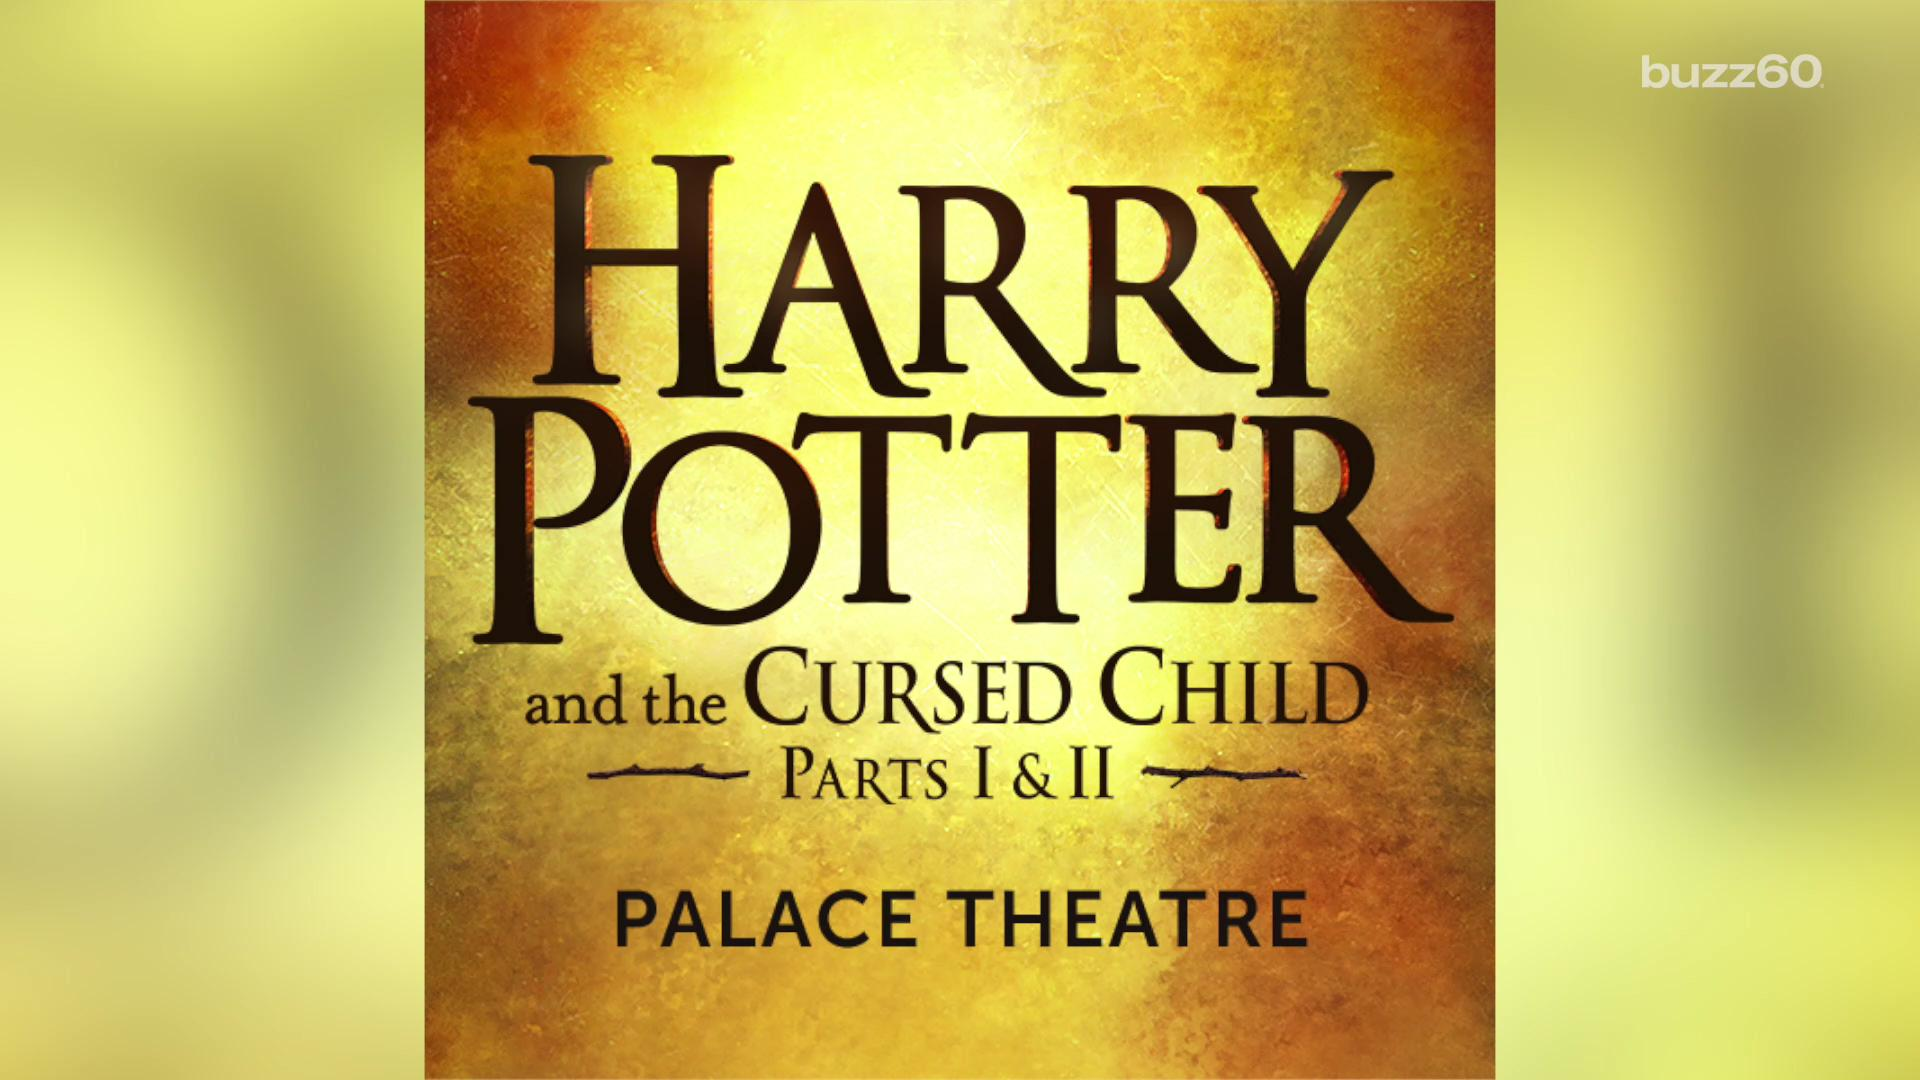 Harry Potter 8th Installment Revealed But It Wont Be A Book